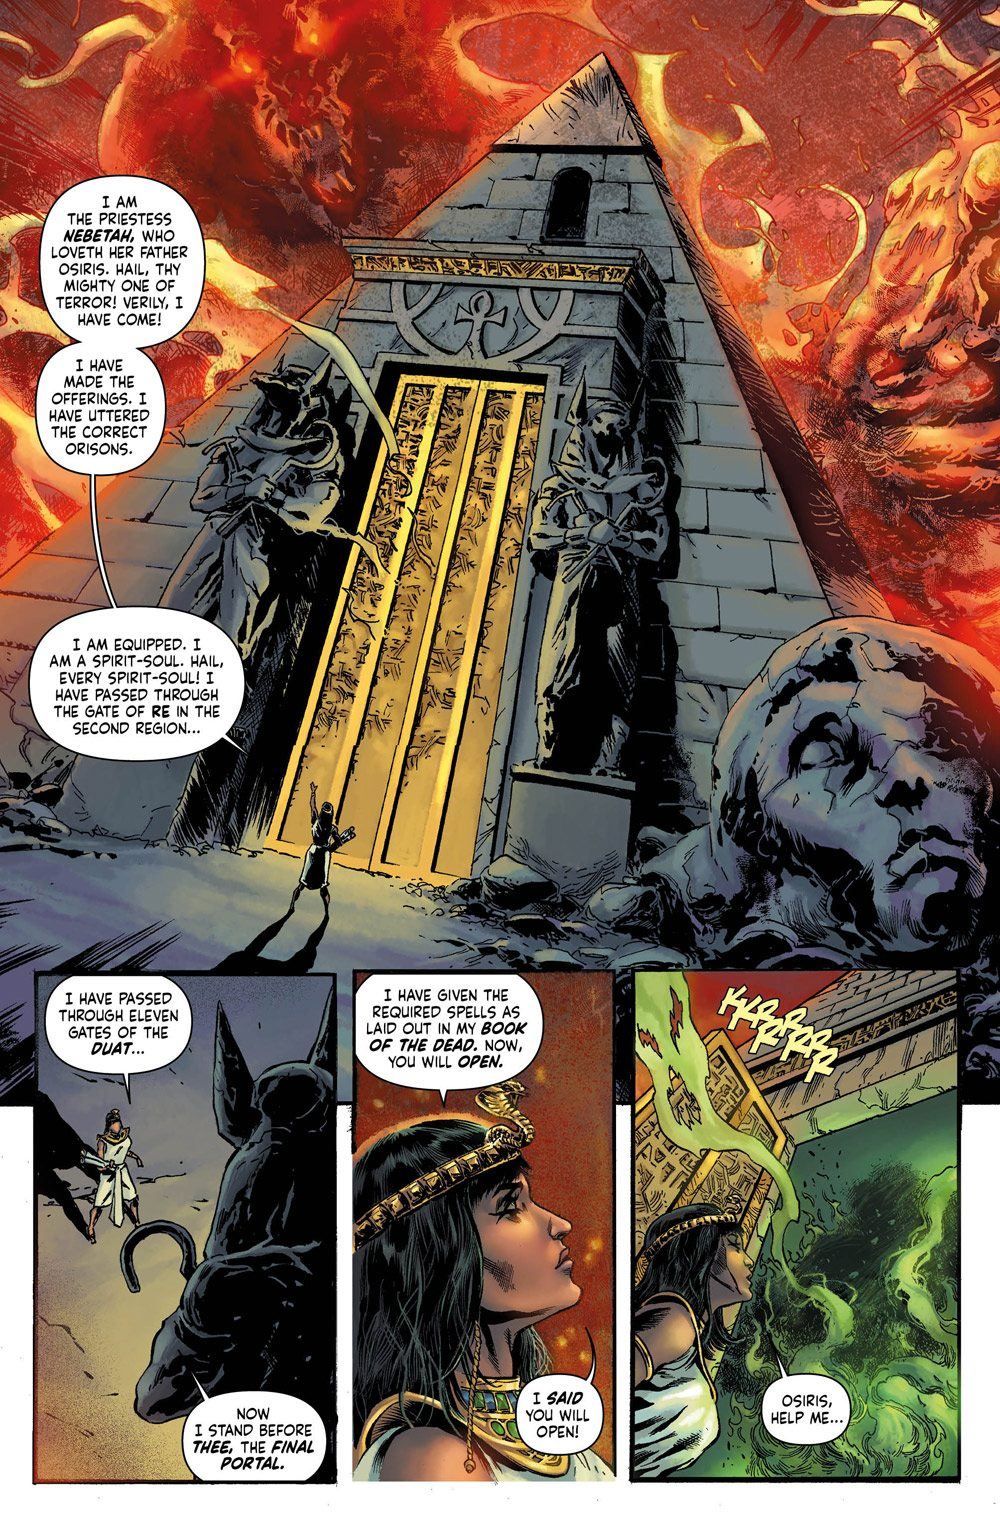 MUMMY Preview 0 revised - Exclusive Reveal: The Mummy Issue #1 Interior Pages and Variant Cover